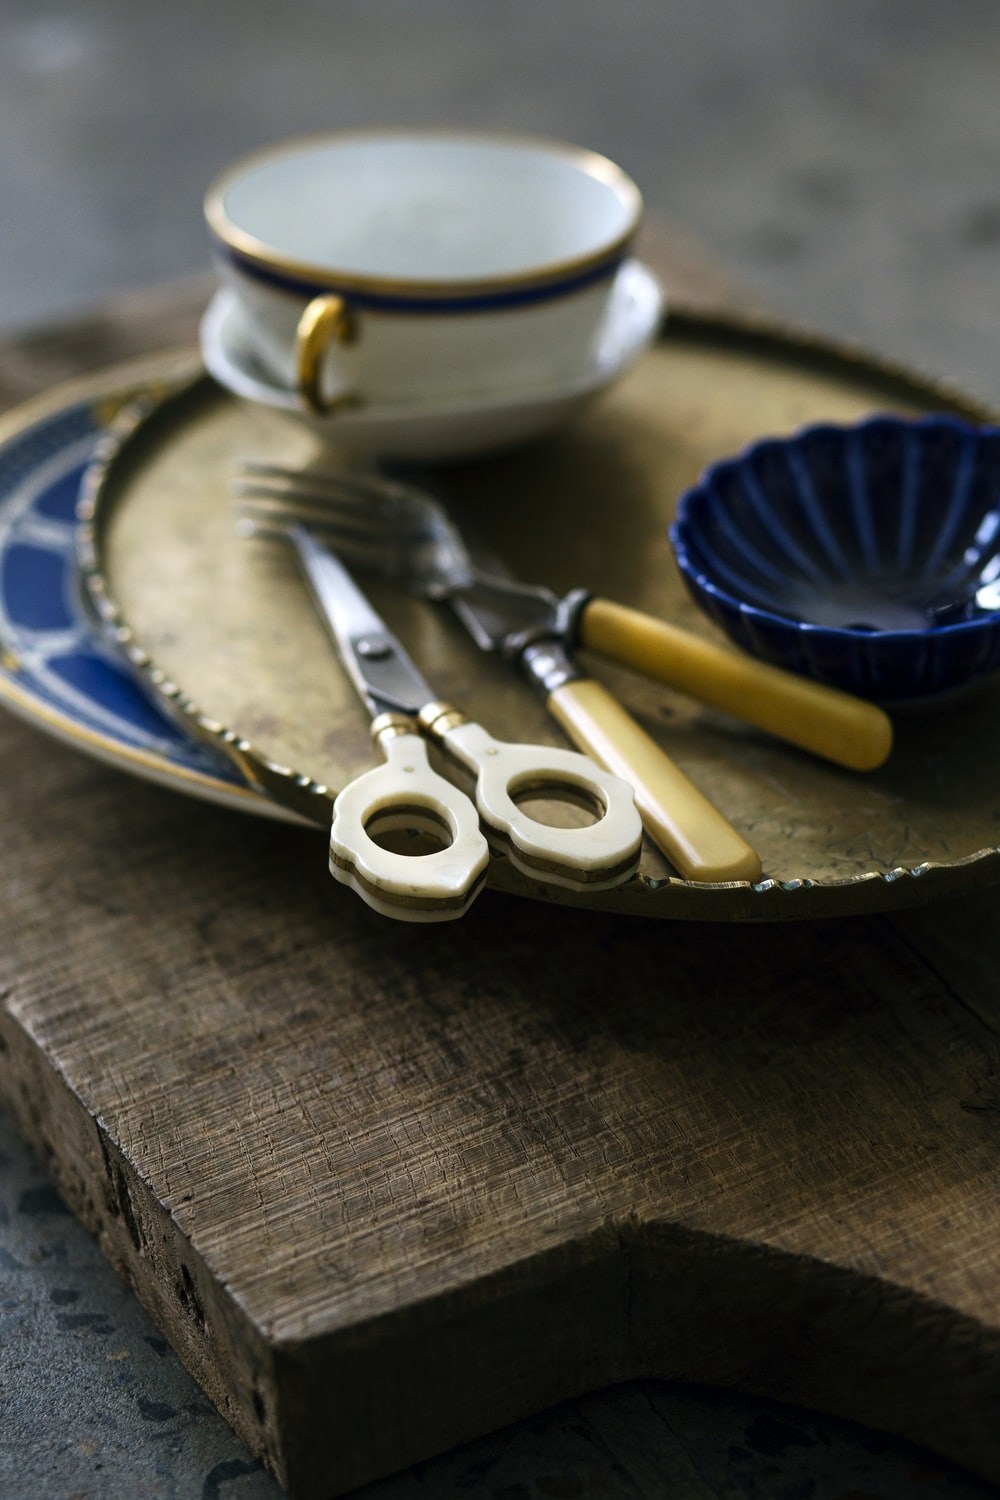 brown handled scissors beside fork and knife on plate